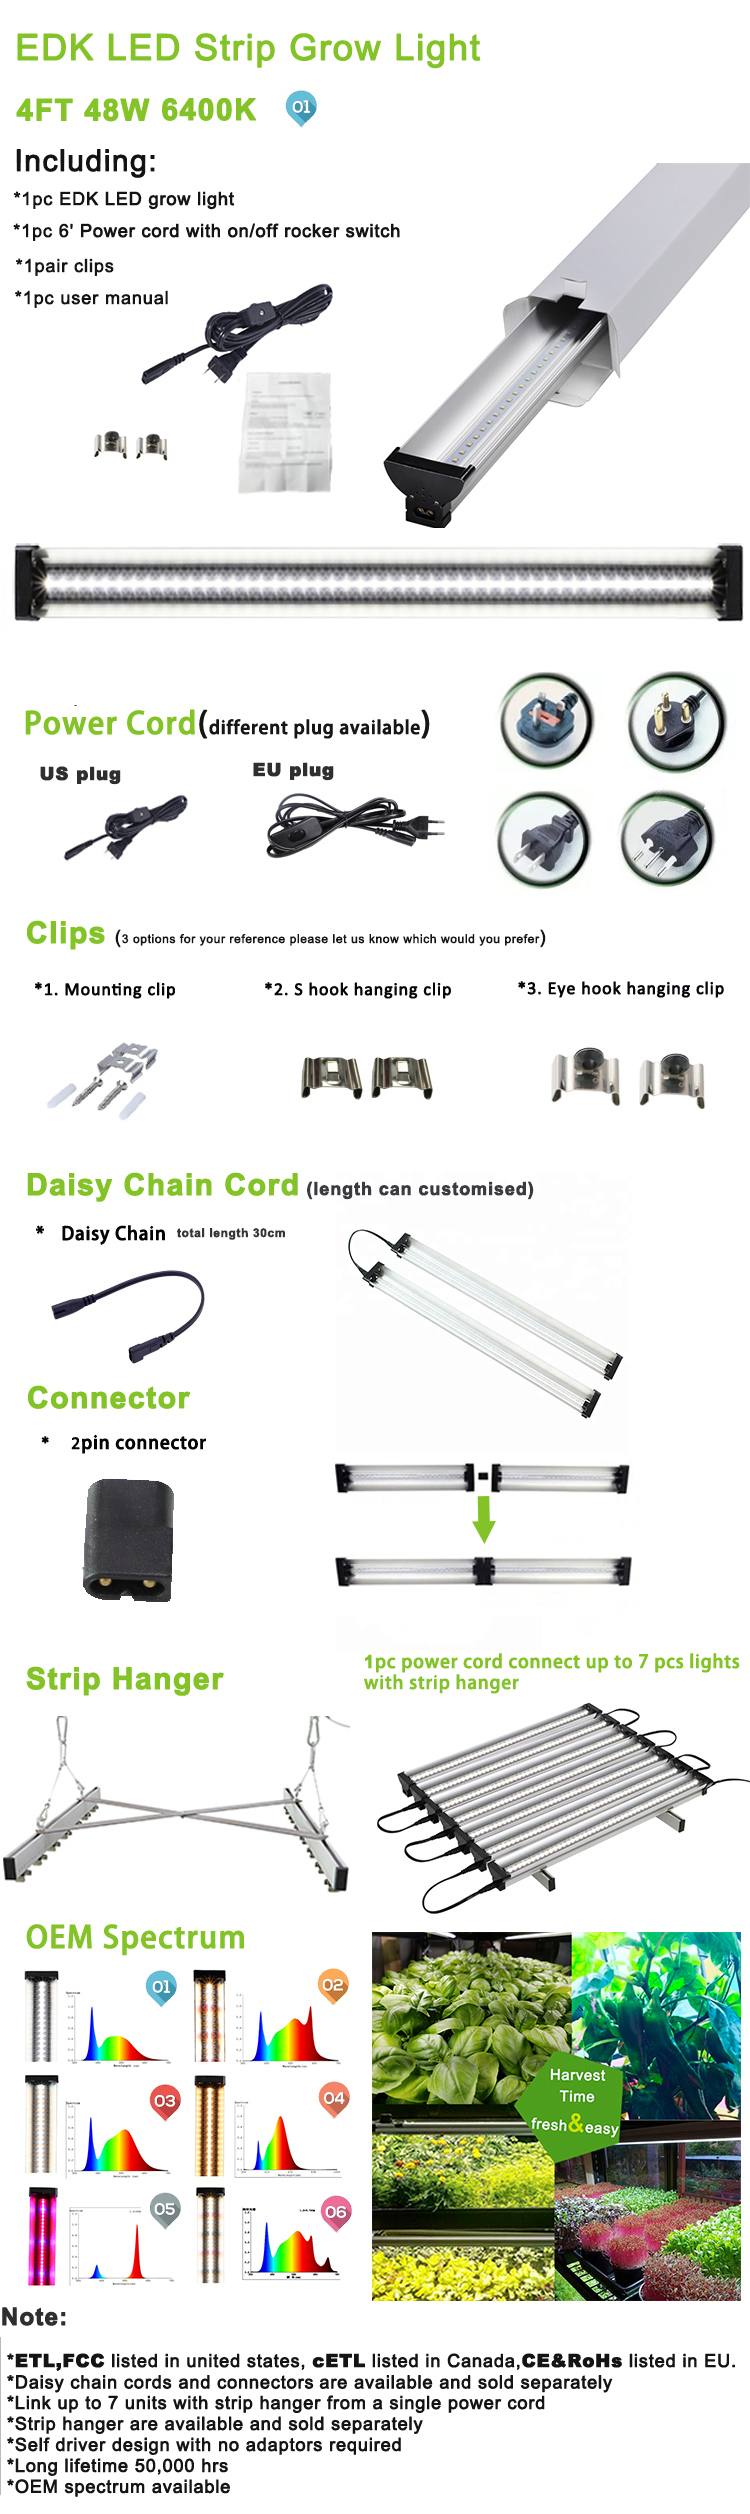 new products 48W Full Spectrum hydroponics LED grow light for indoor plants veg & bloom Fruit